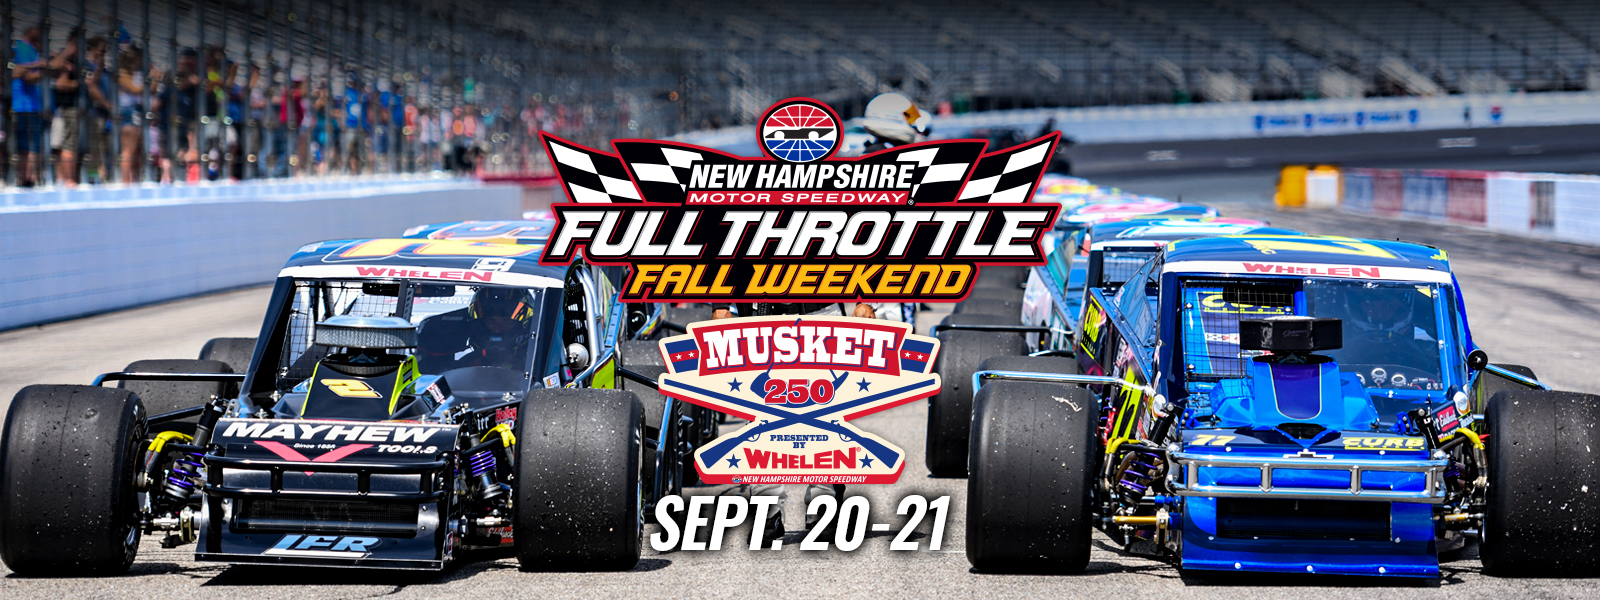 Full Throttle Fall Weekend